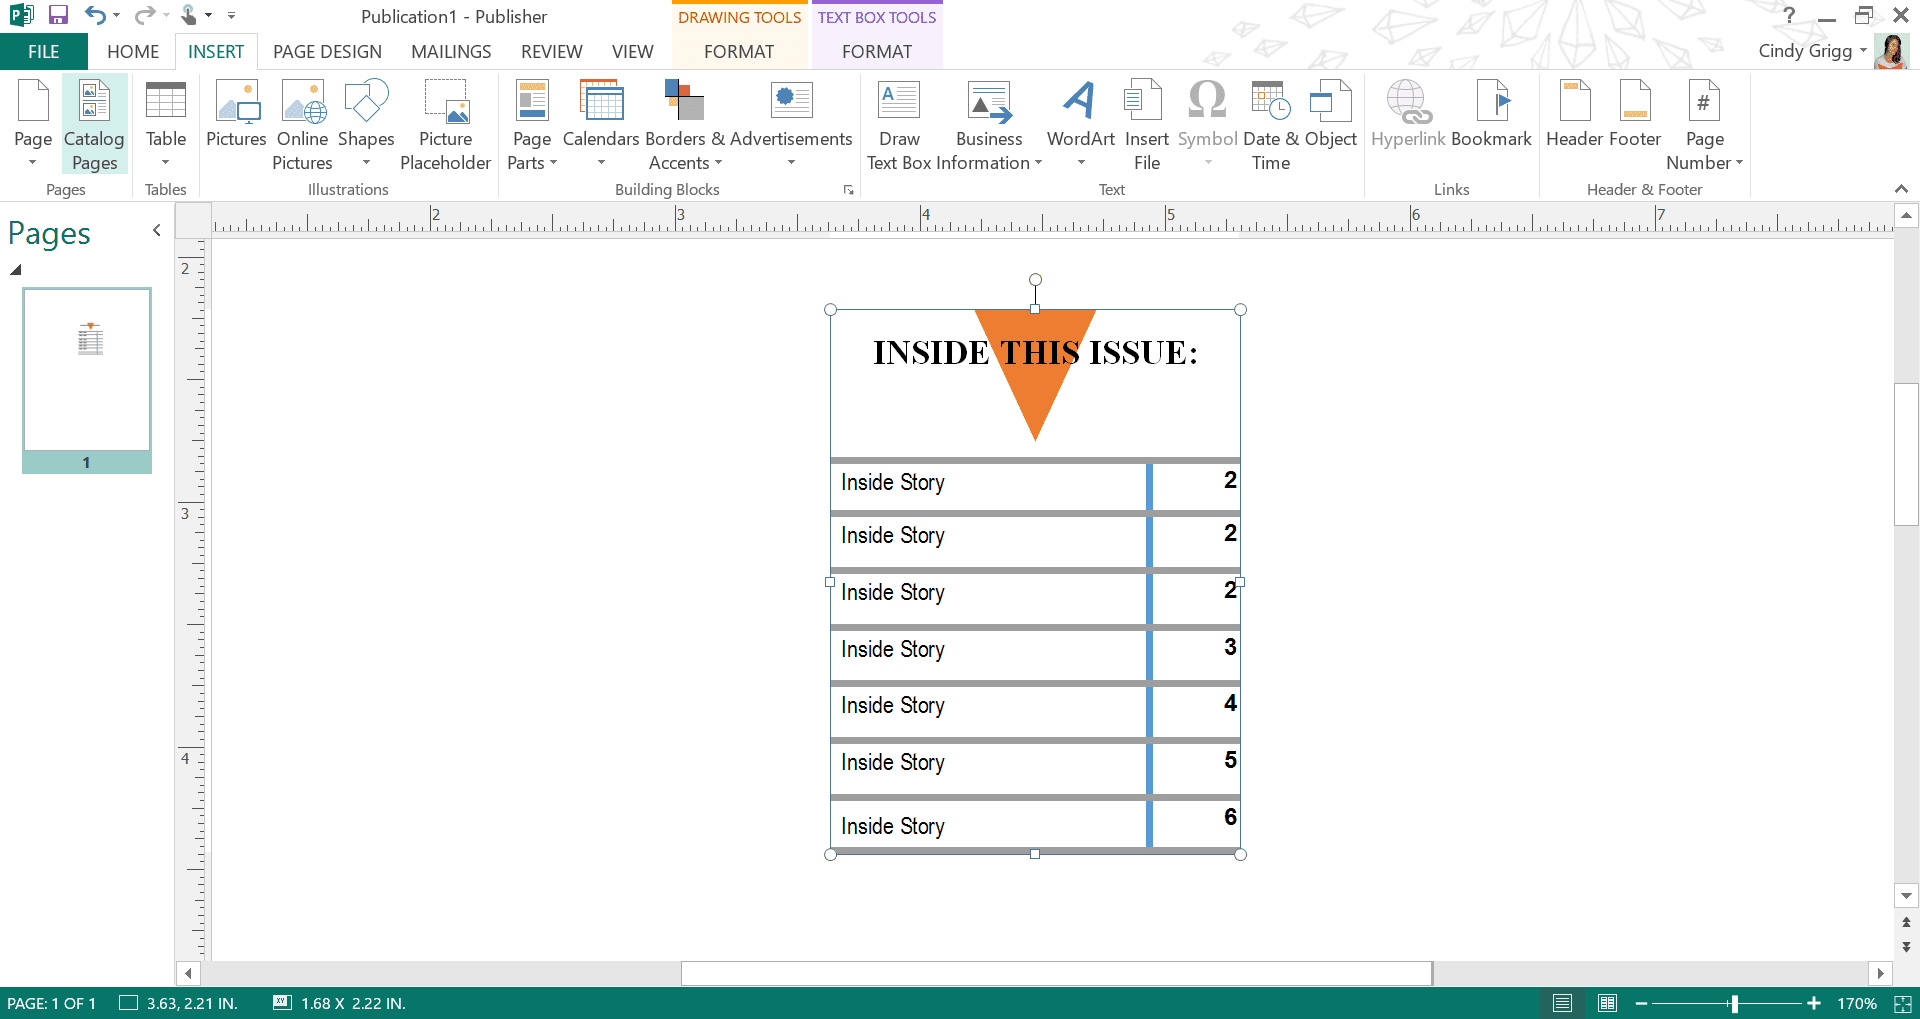 Best Table of Contents Building Blocks and Page Parts for Microsoft Word  and Publisher